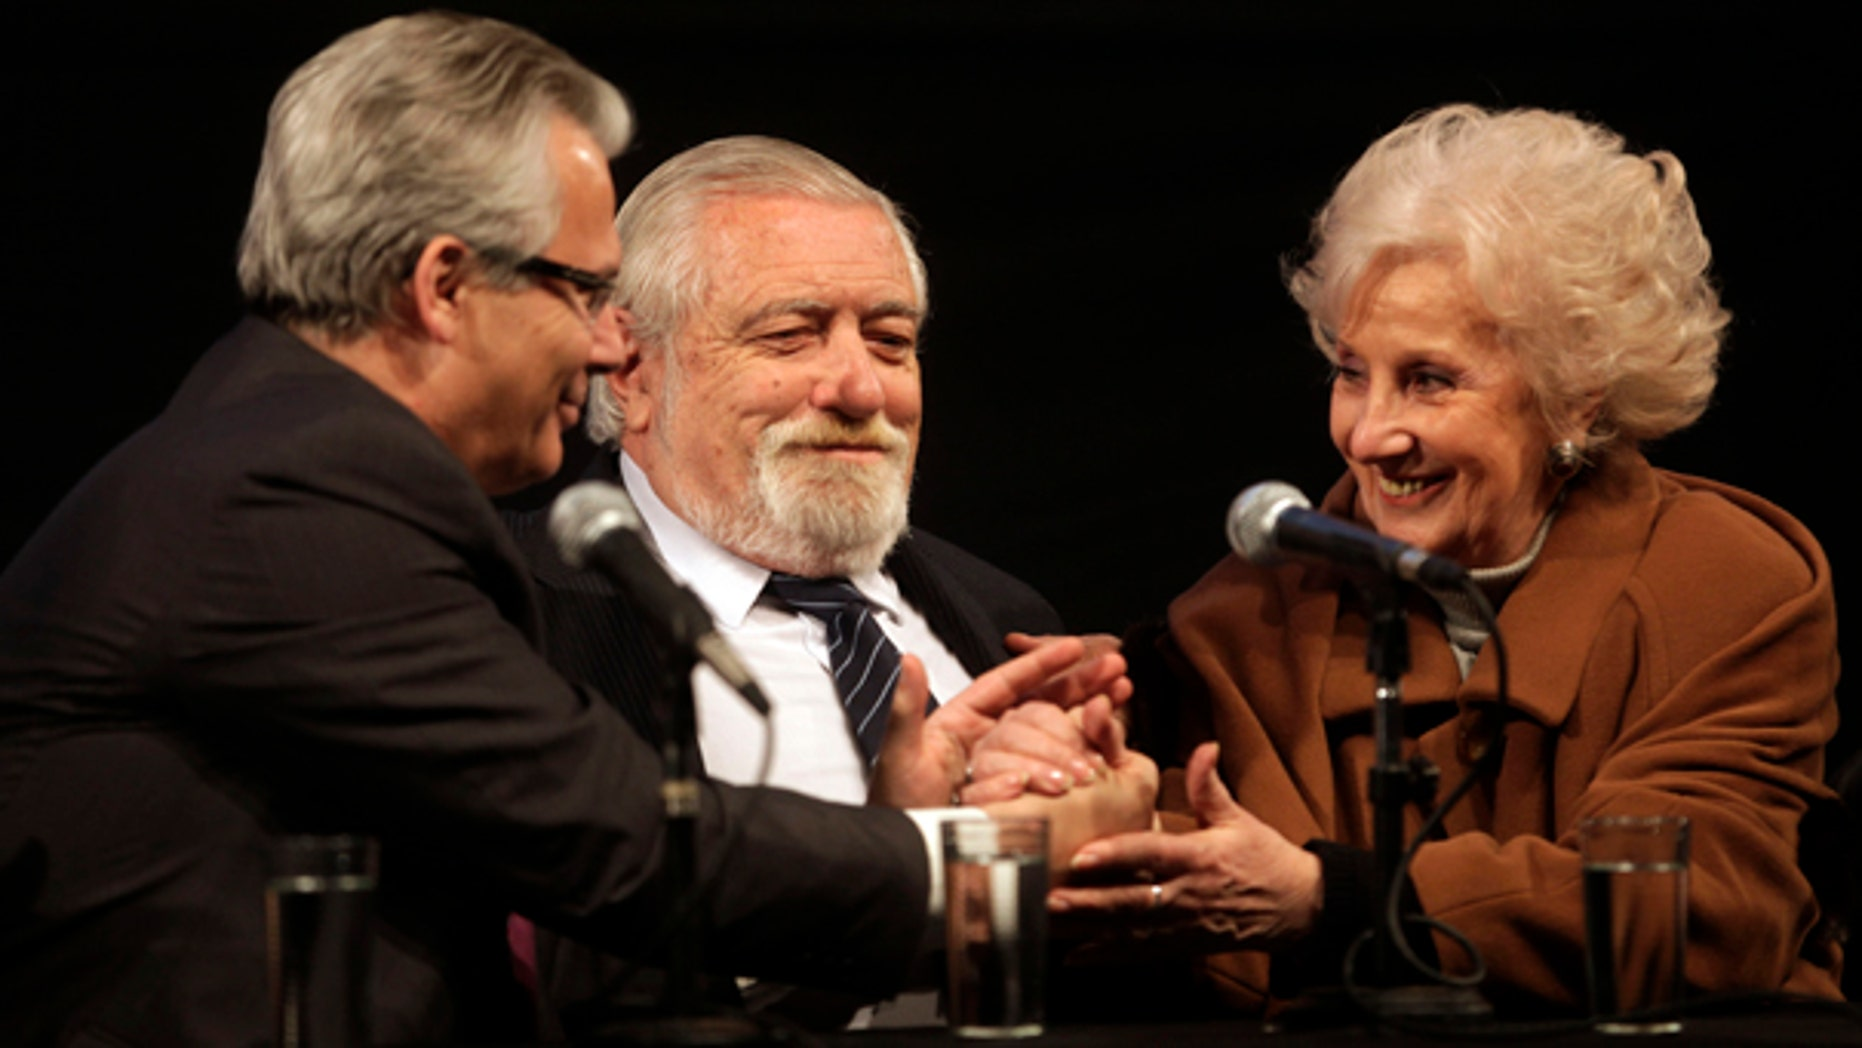 July 15: Spain's Judge Baltazar Garzon, holds hands with Estela de Carlotto, president of the Grandmother's of Plaza de Mayo organization during a ceremony in support of Garzon, at the former Argentine Navy School of Mechanics (ESMA) in Buenos Aires. (AP)